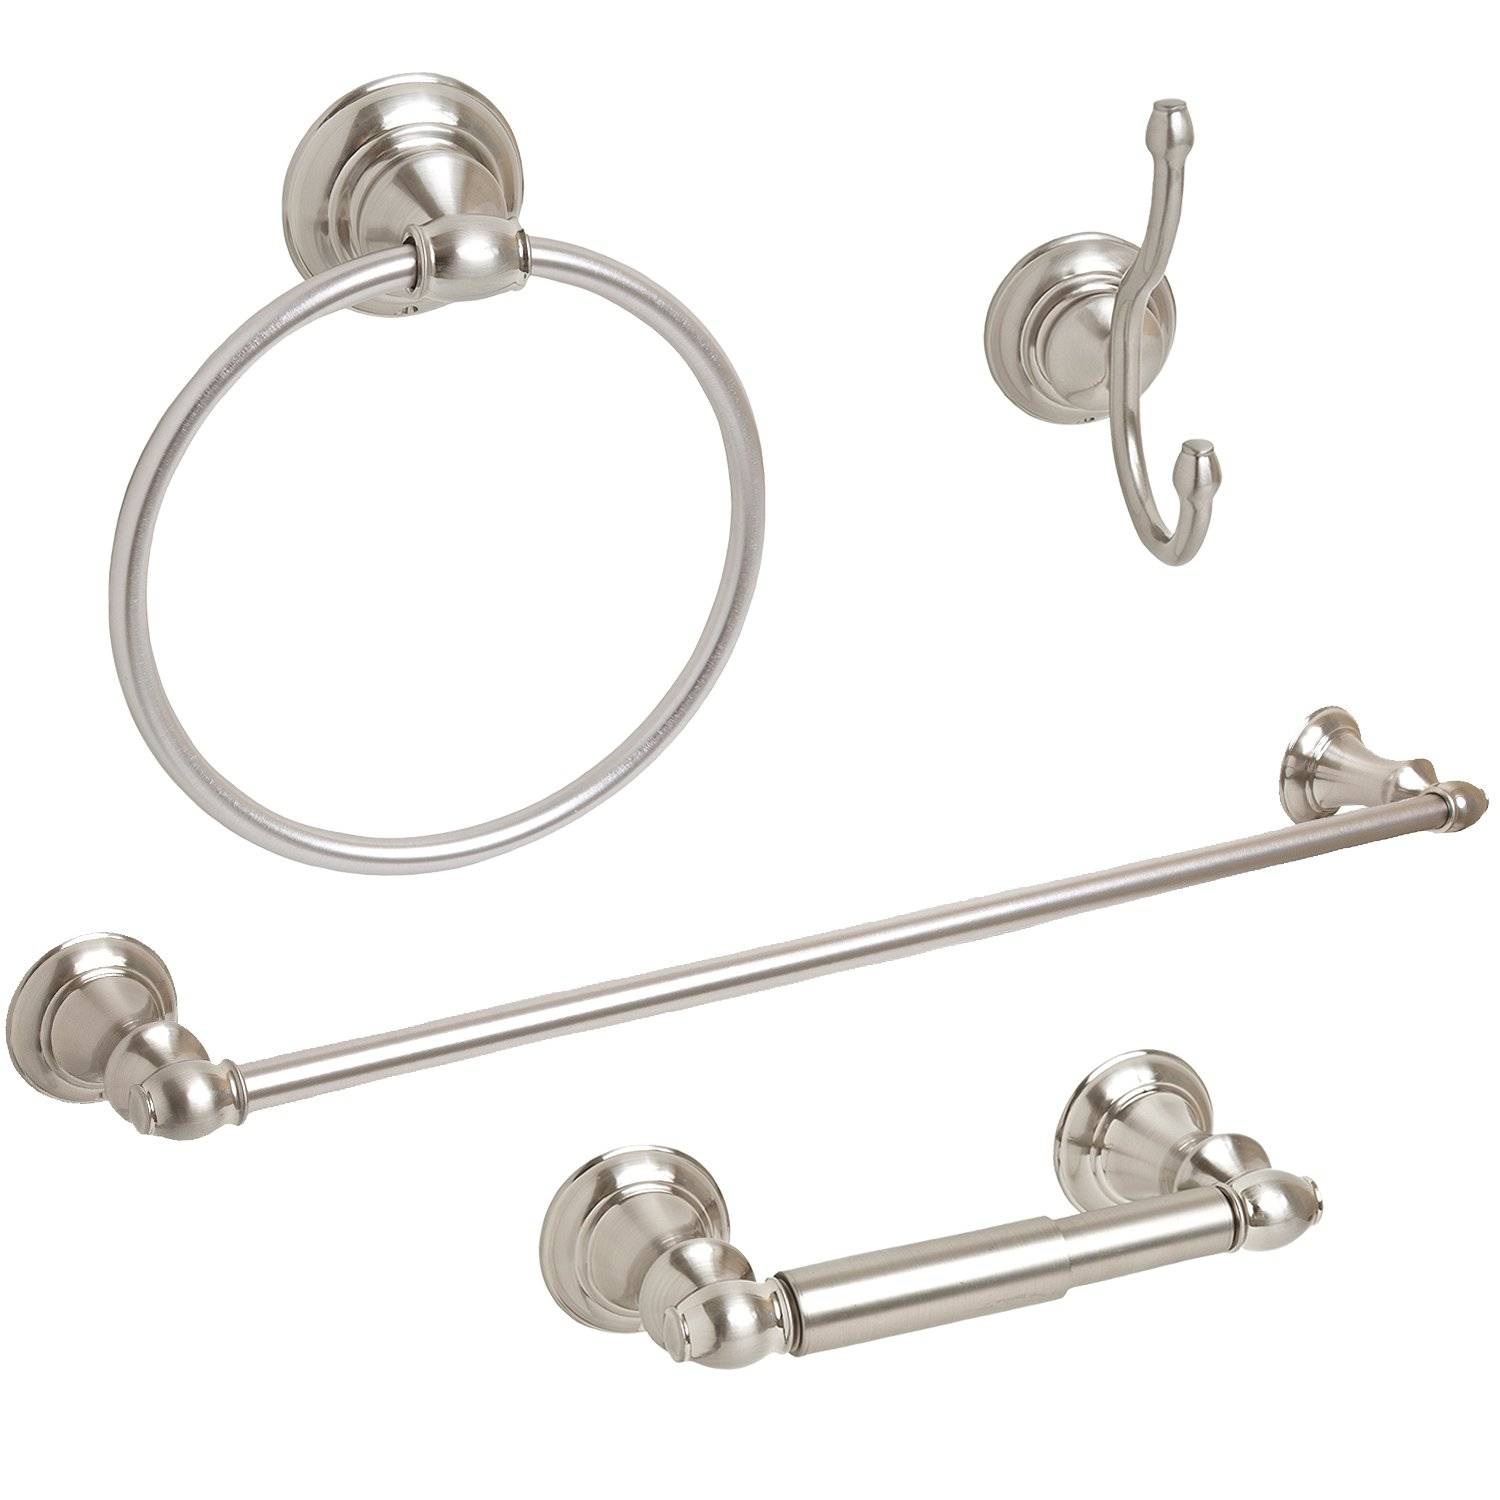 "4-Piece Bathroom Hardware Accessory Set With 24"" Towel Bar - Brushed Nickel"